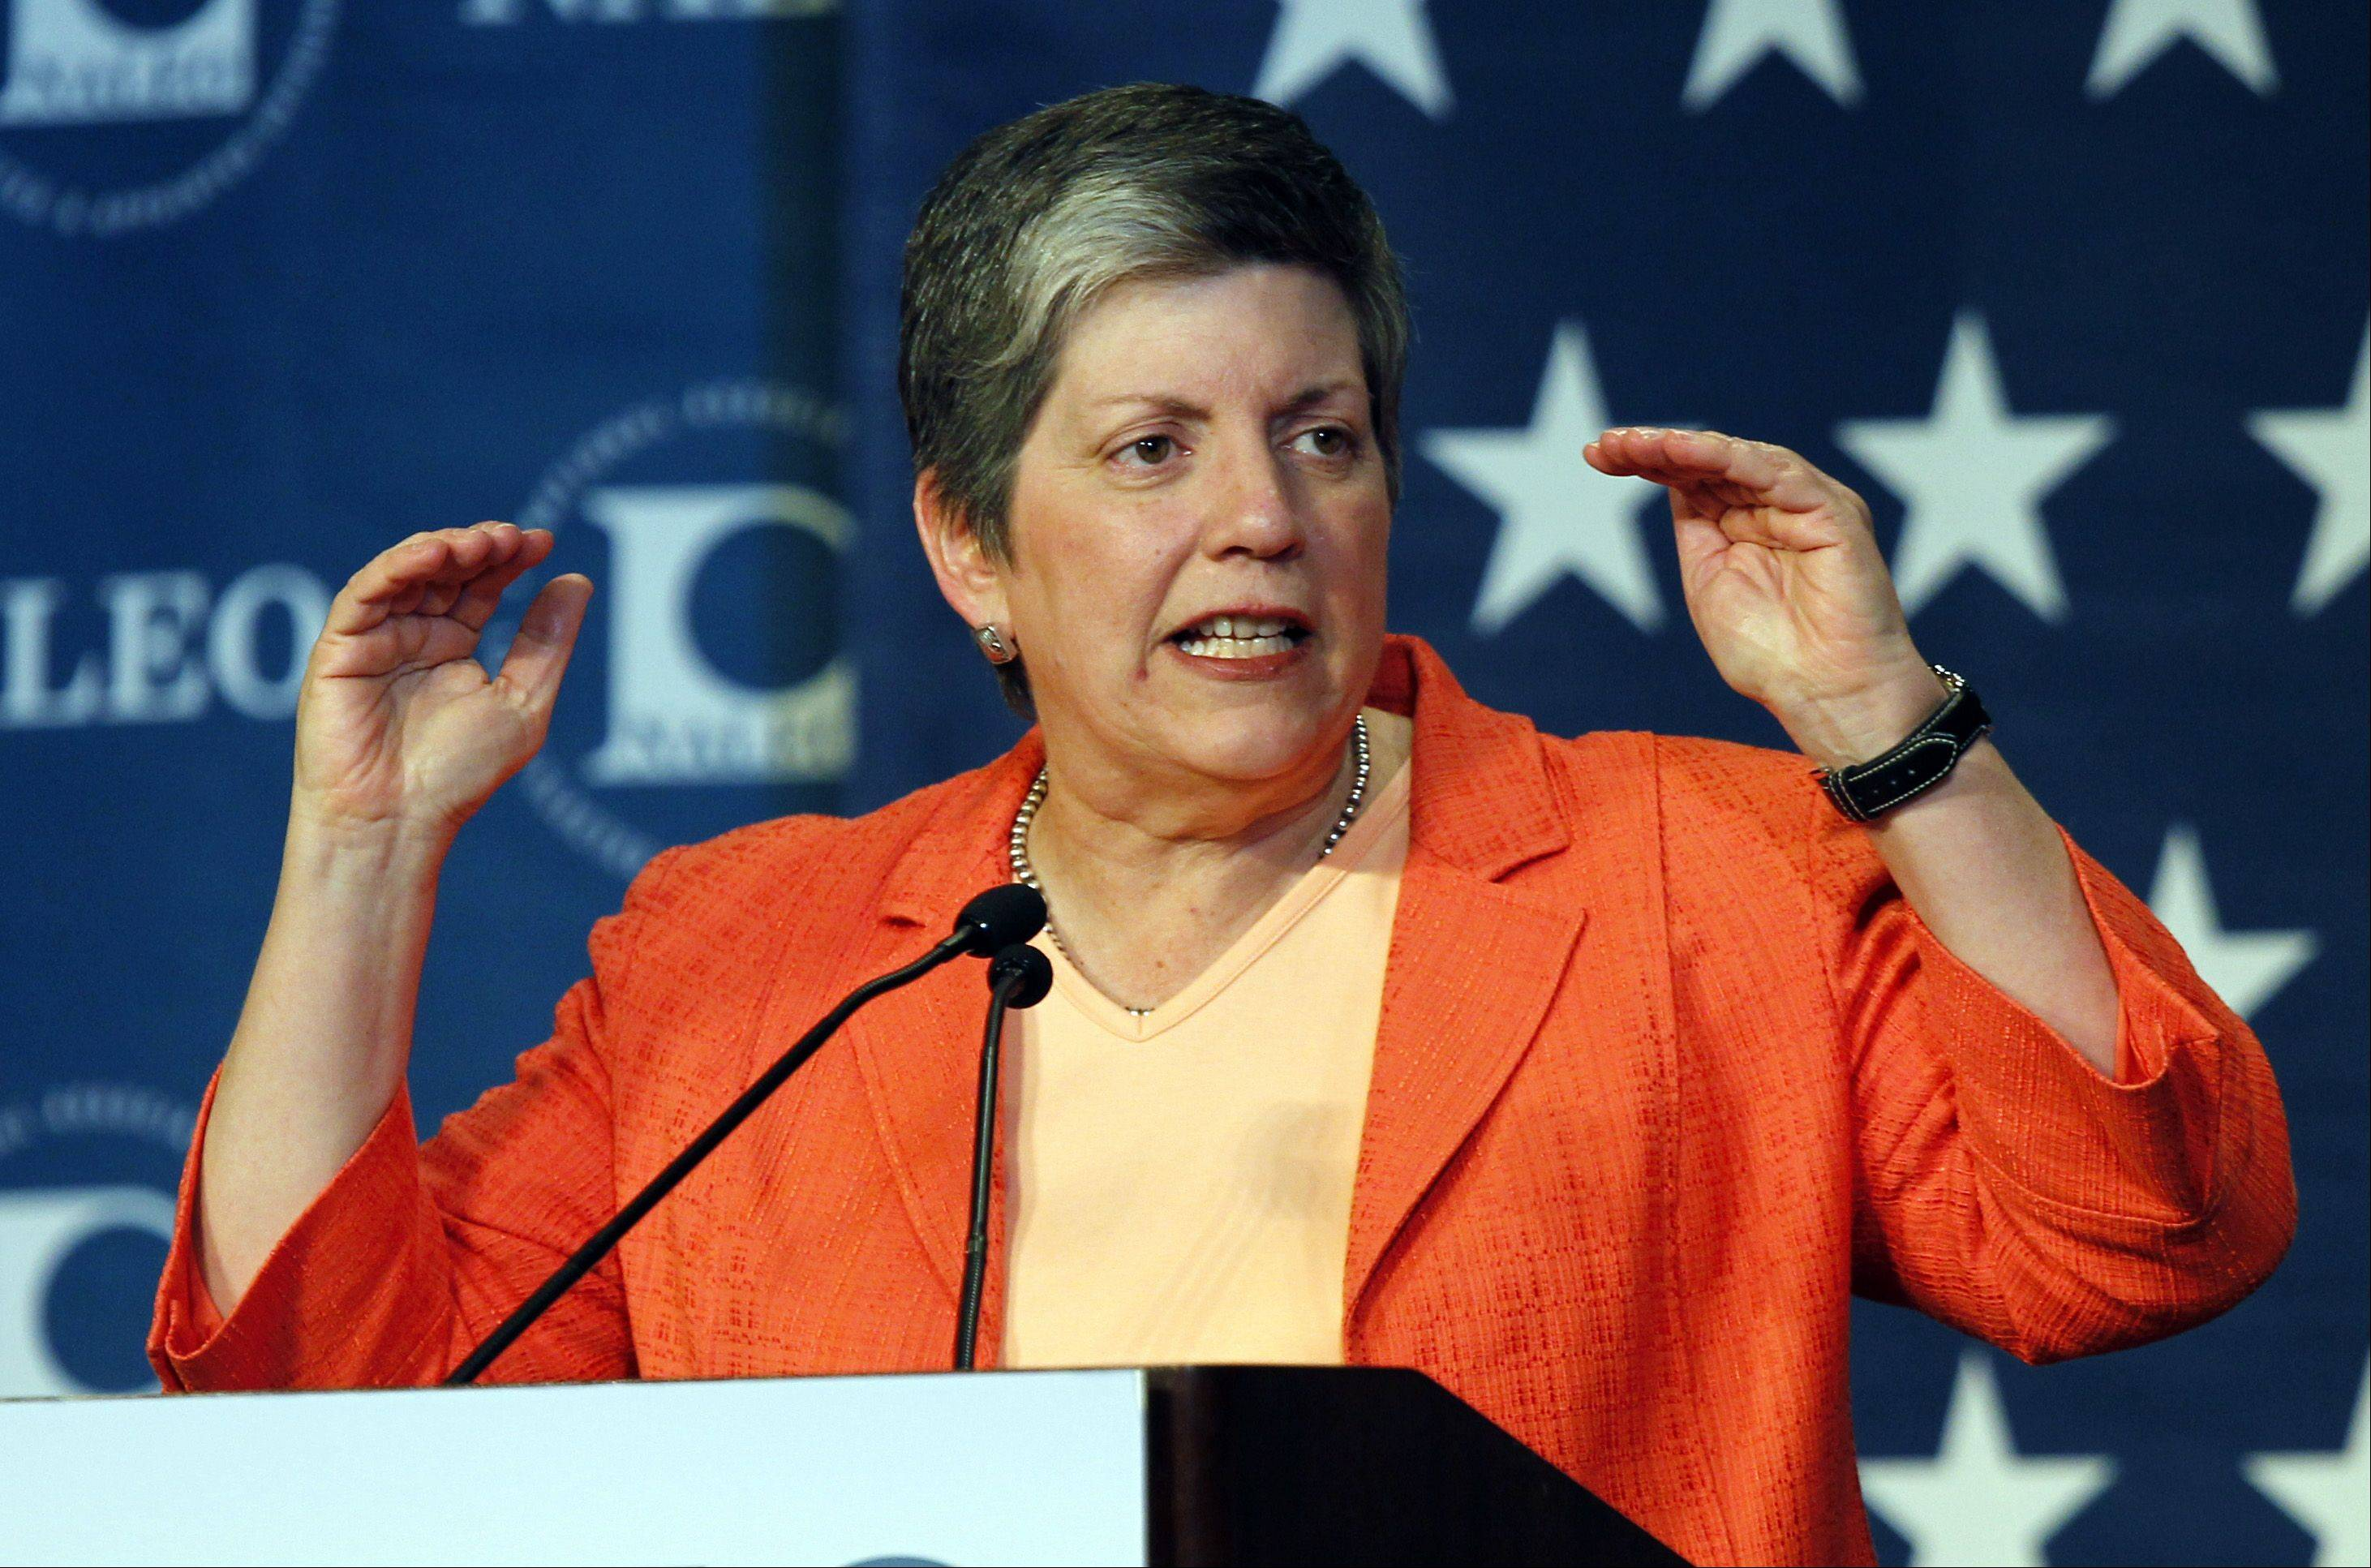 U.S. Homeland Security Secretary Janet Napolitano speaks during a luncheon to the National Association of Latino Elected and Appointed Officials in Denver in 2010.